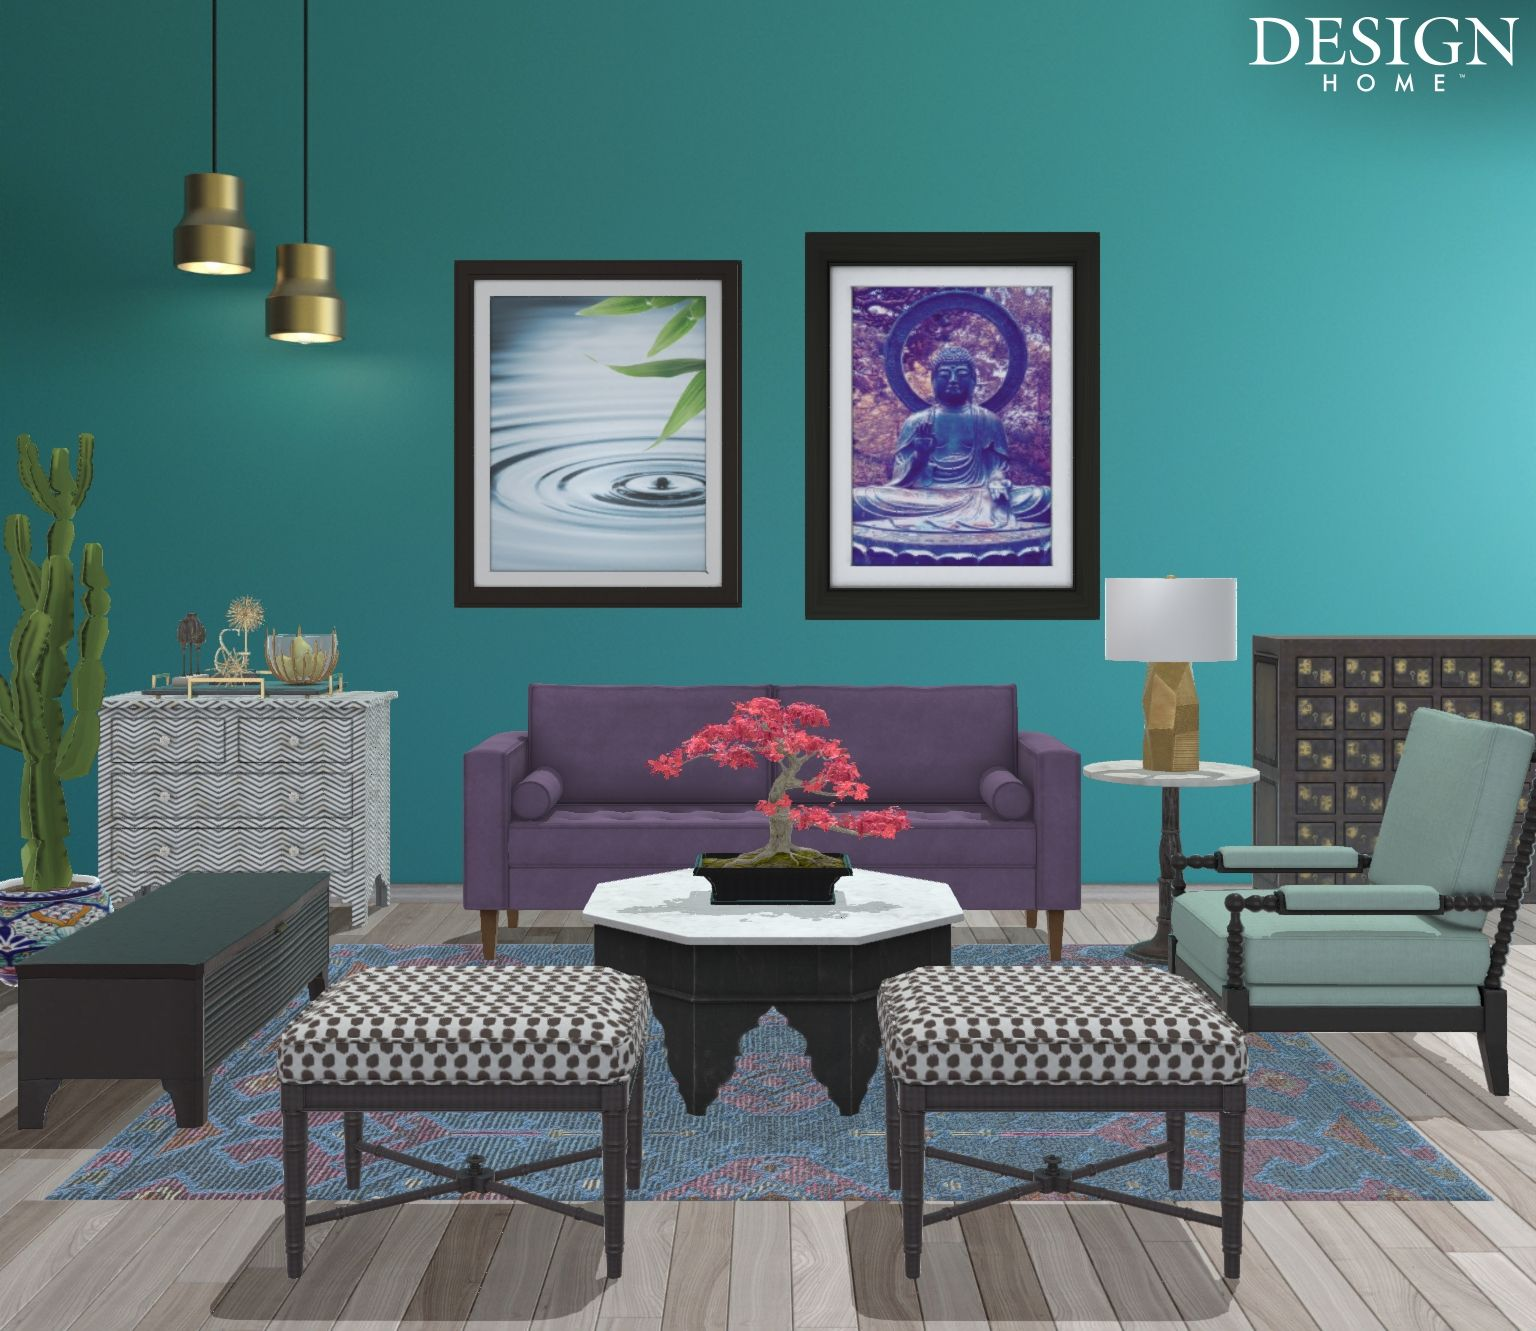 Pin By Julie Hannant On Design Home App